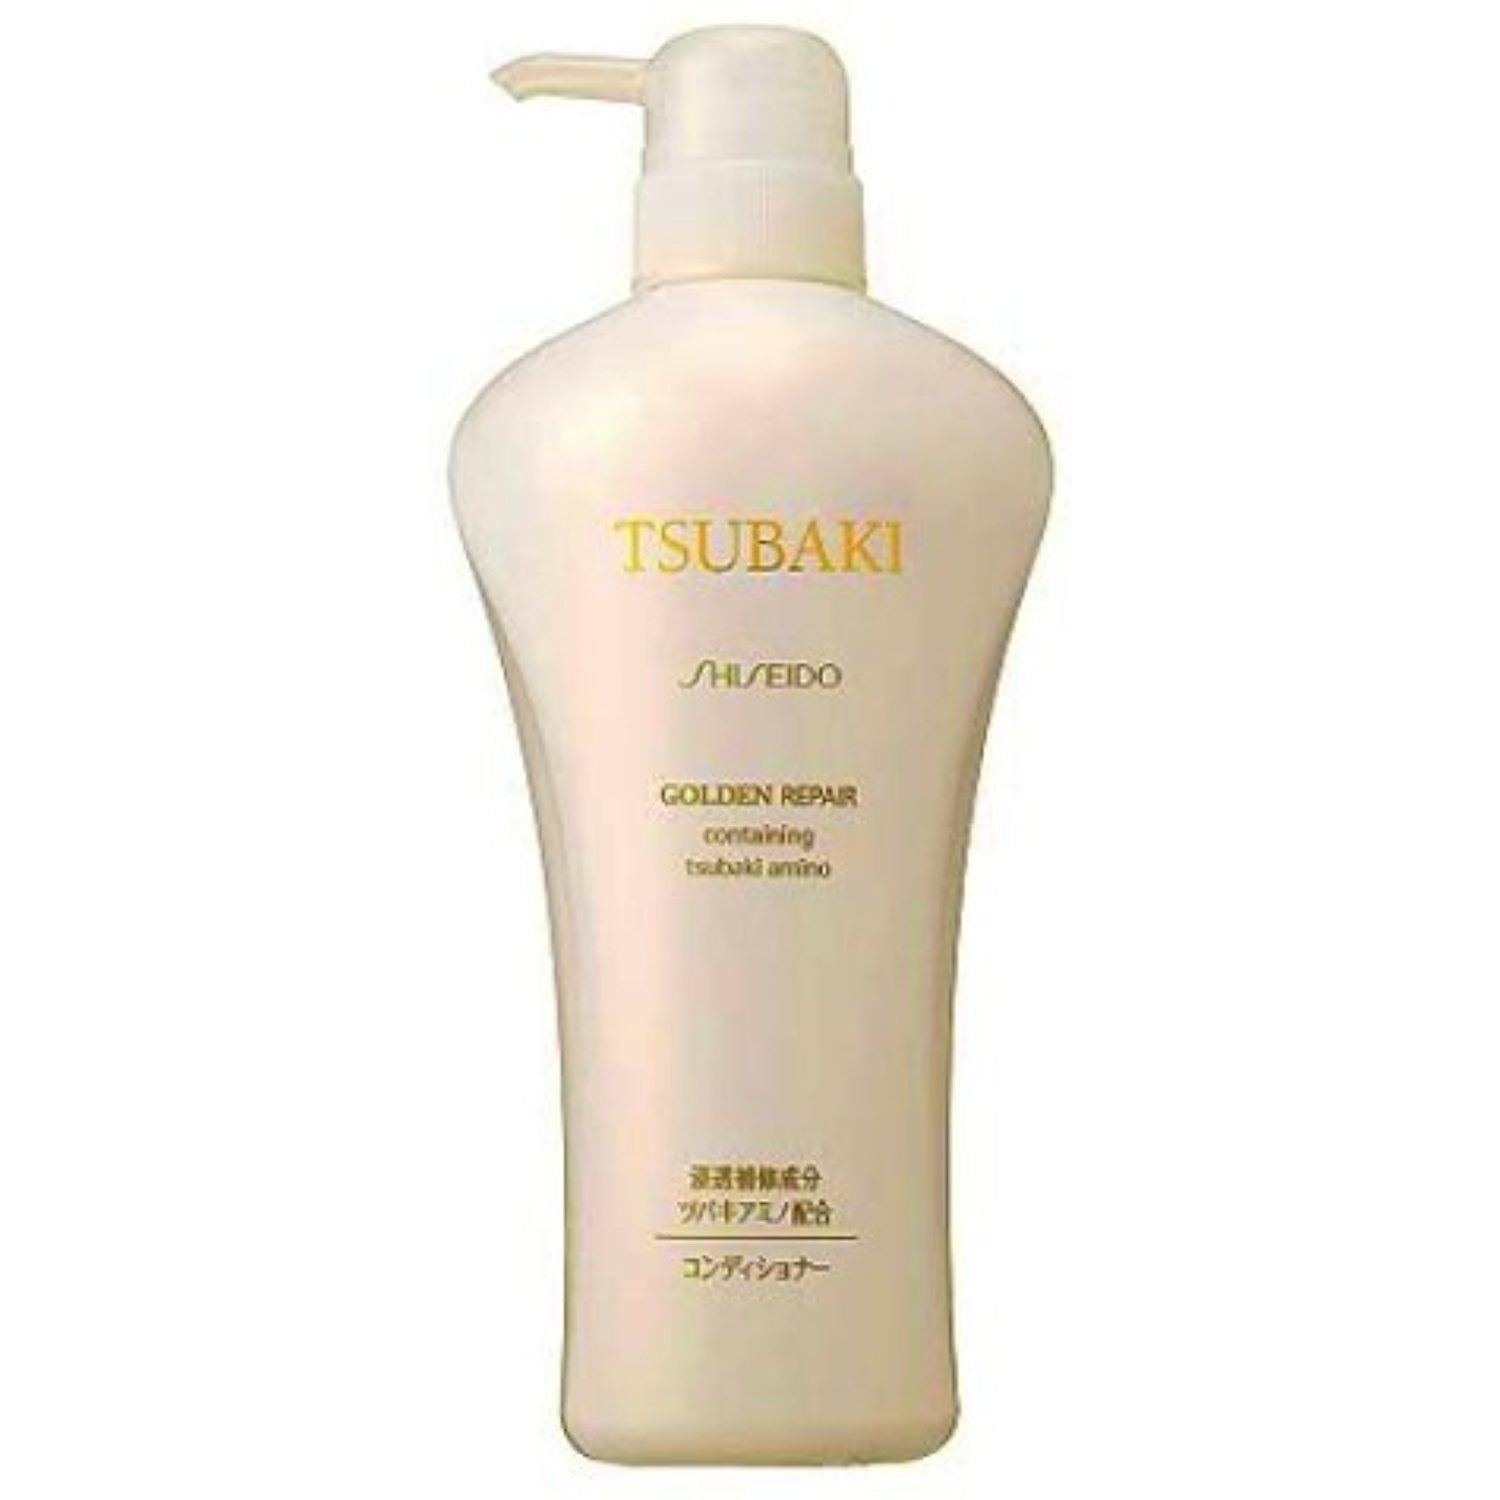 Shiseido Tsubaki Damage Care Hair Conditioner Pump 550ml You Can Get Additional Details At The Image Link This Is Hair Conditioner Conditioner Hair Care